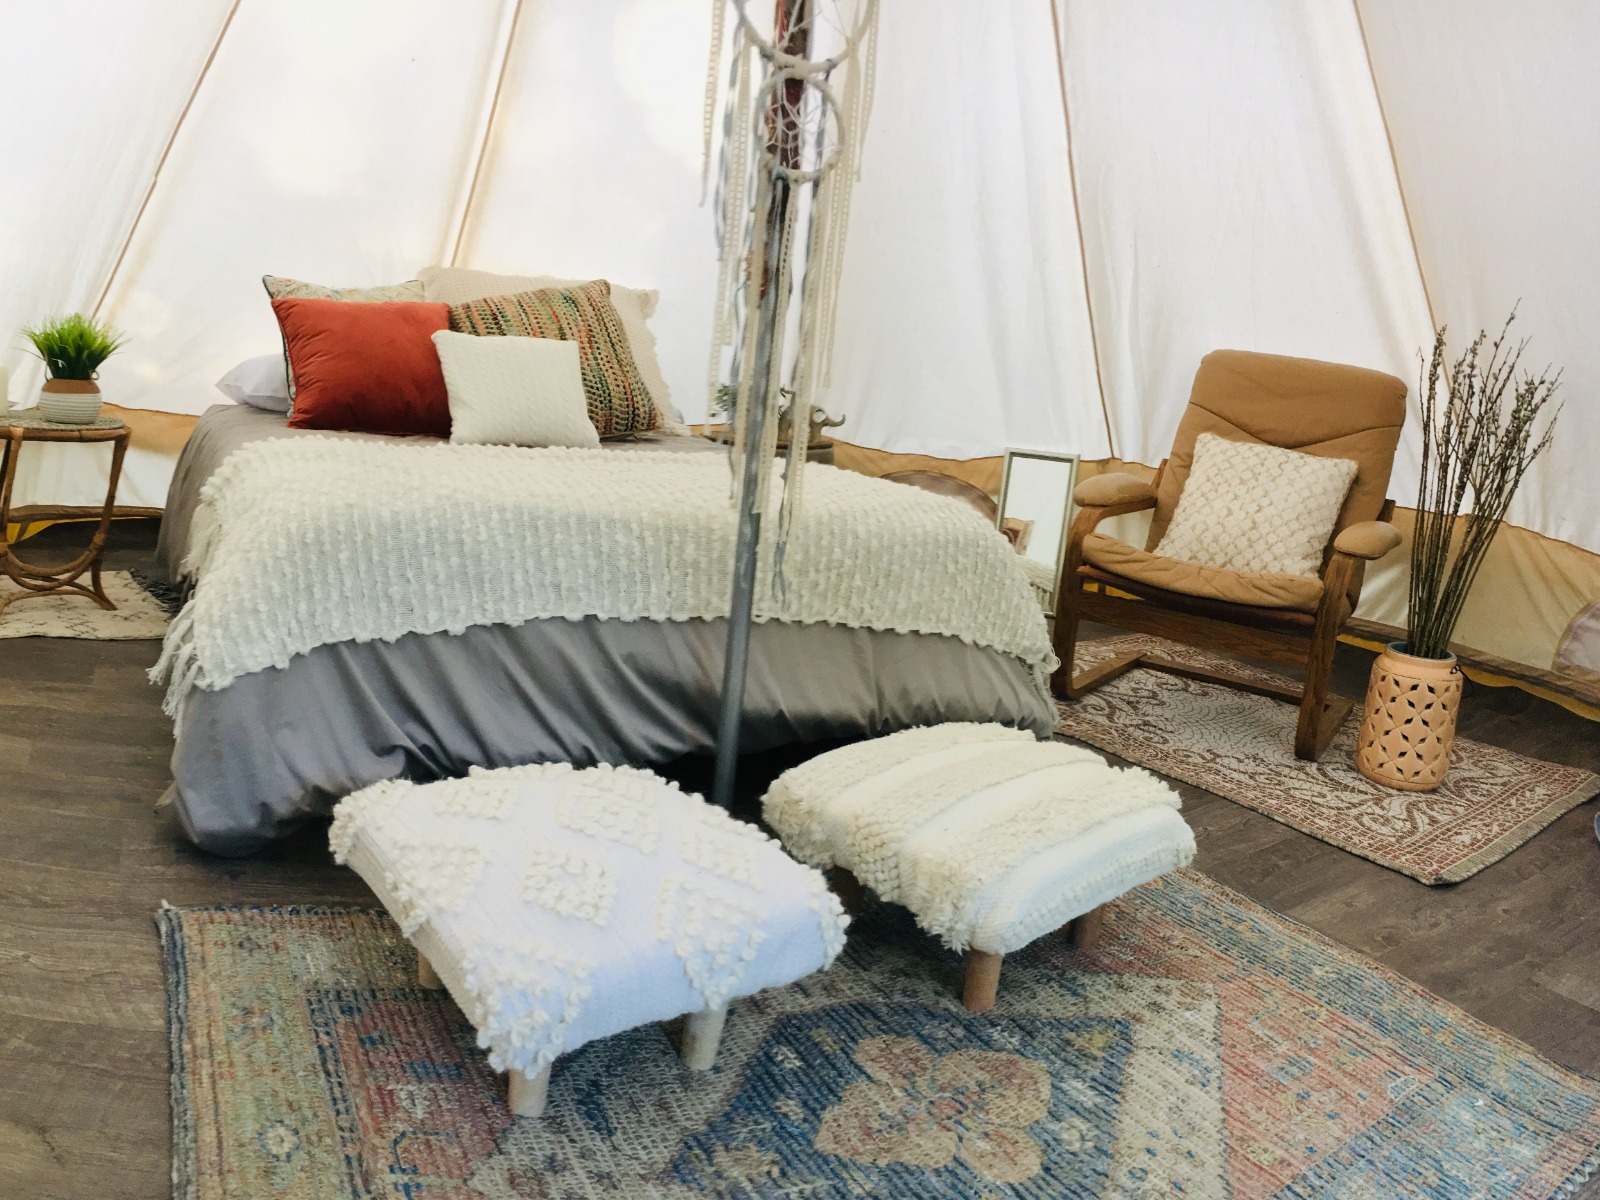 Elevated Escapes Glamping